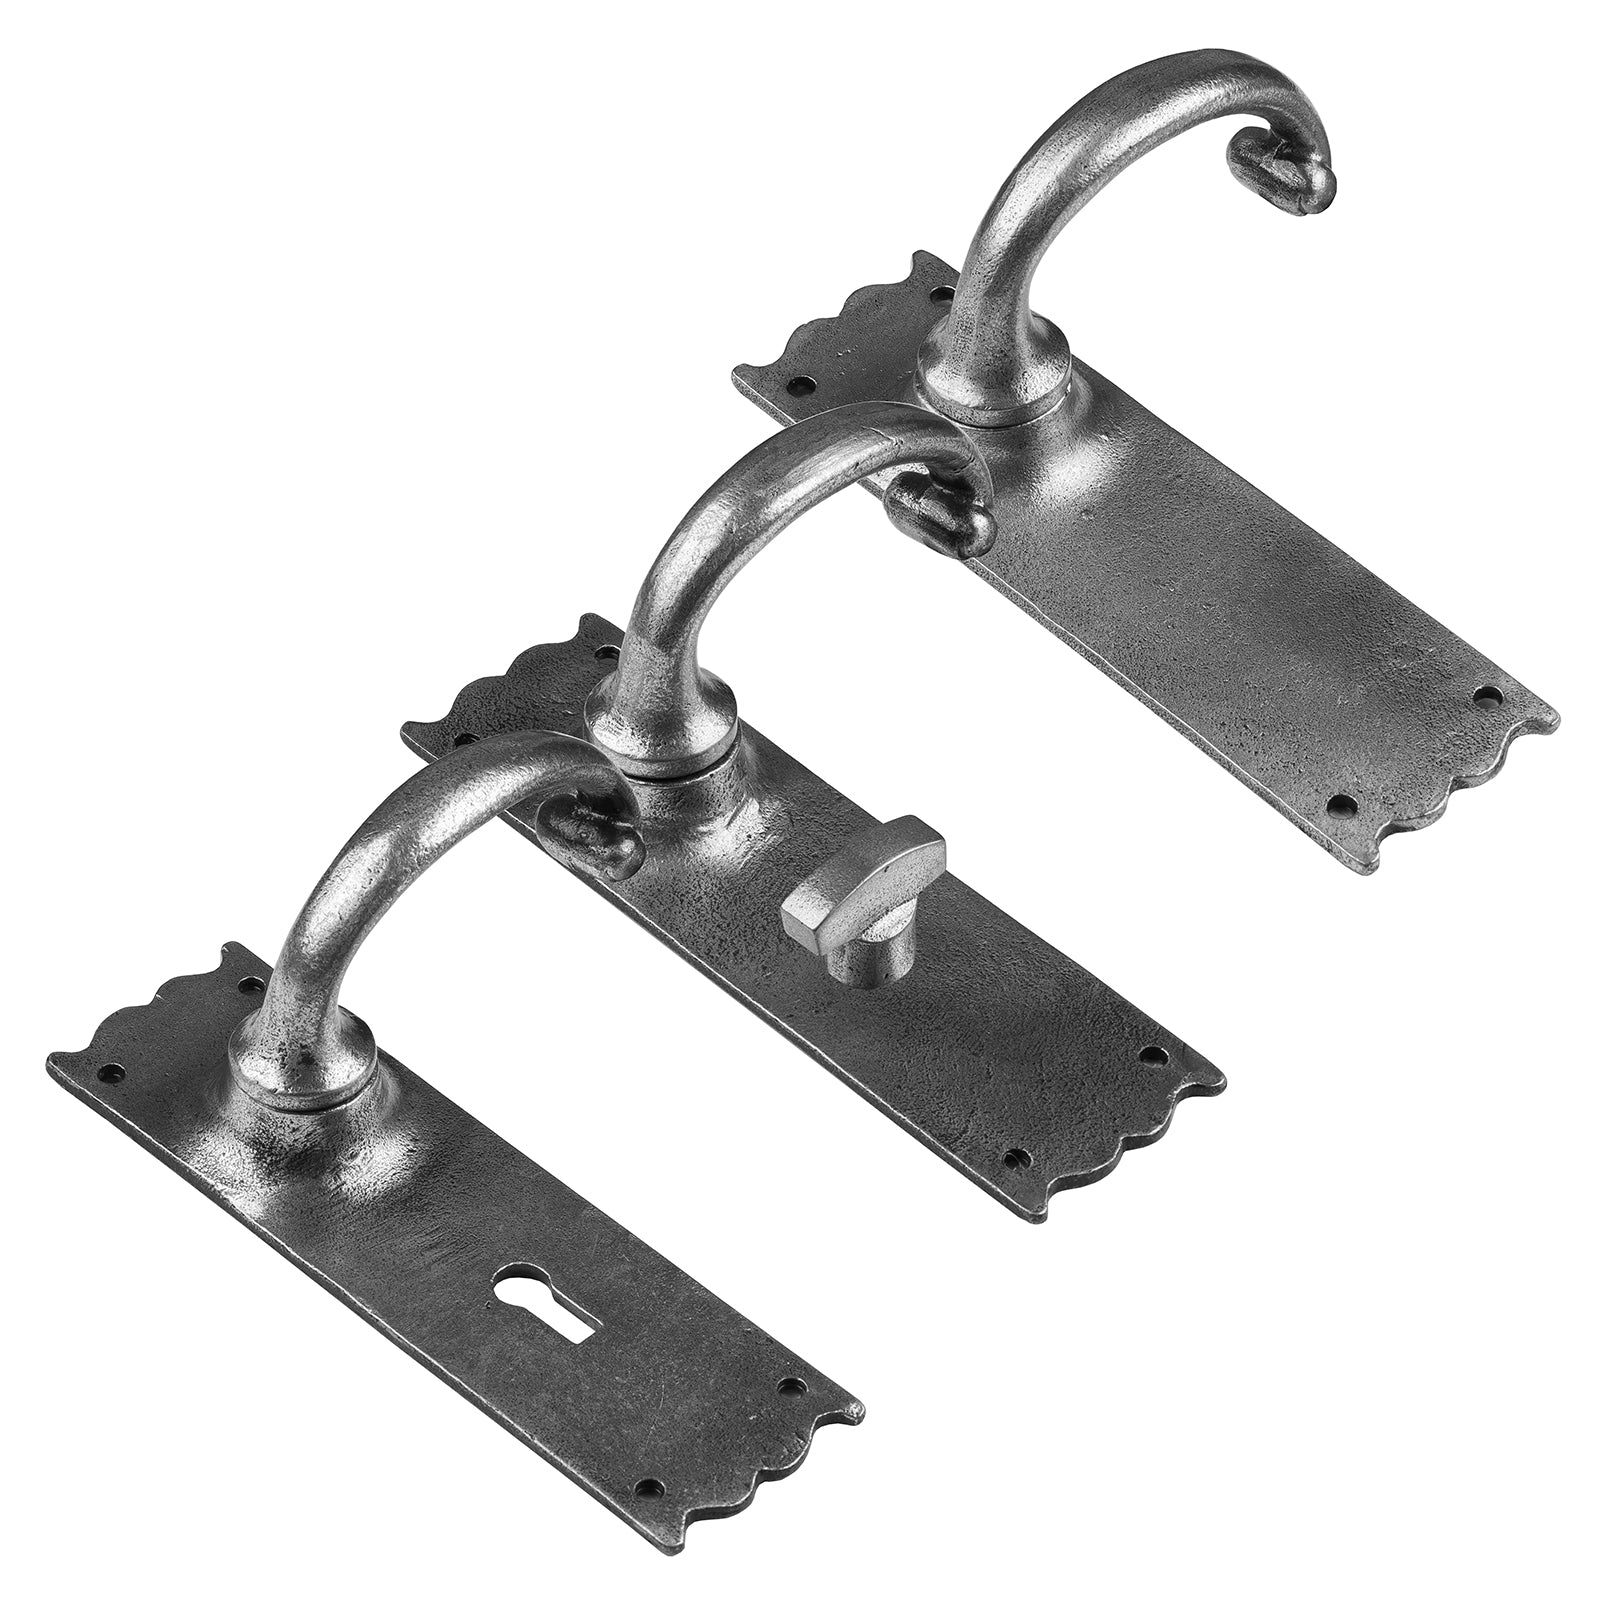 Cottage Lever Handles Pewter Lock Bathroom Latch